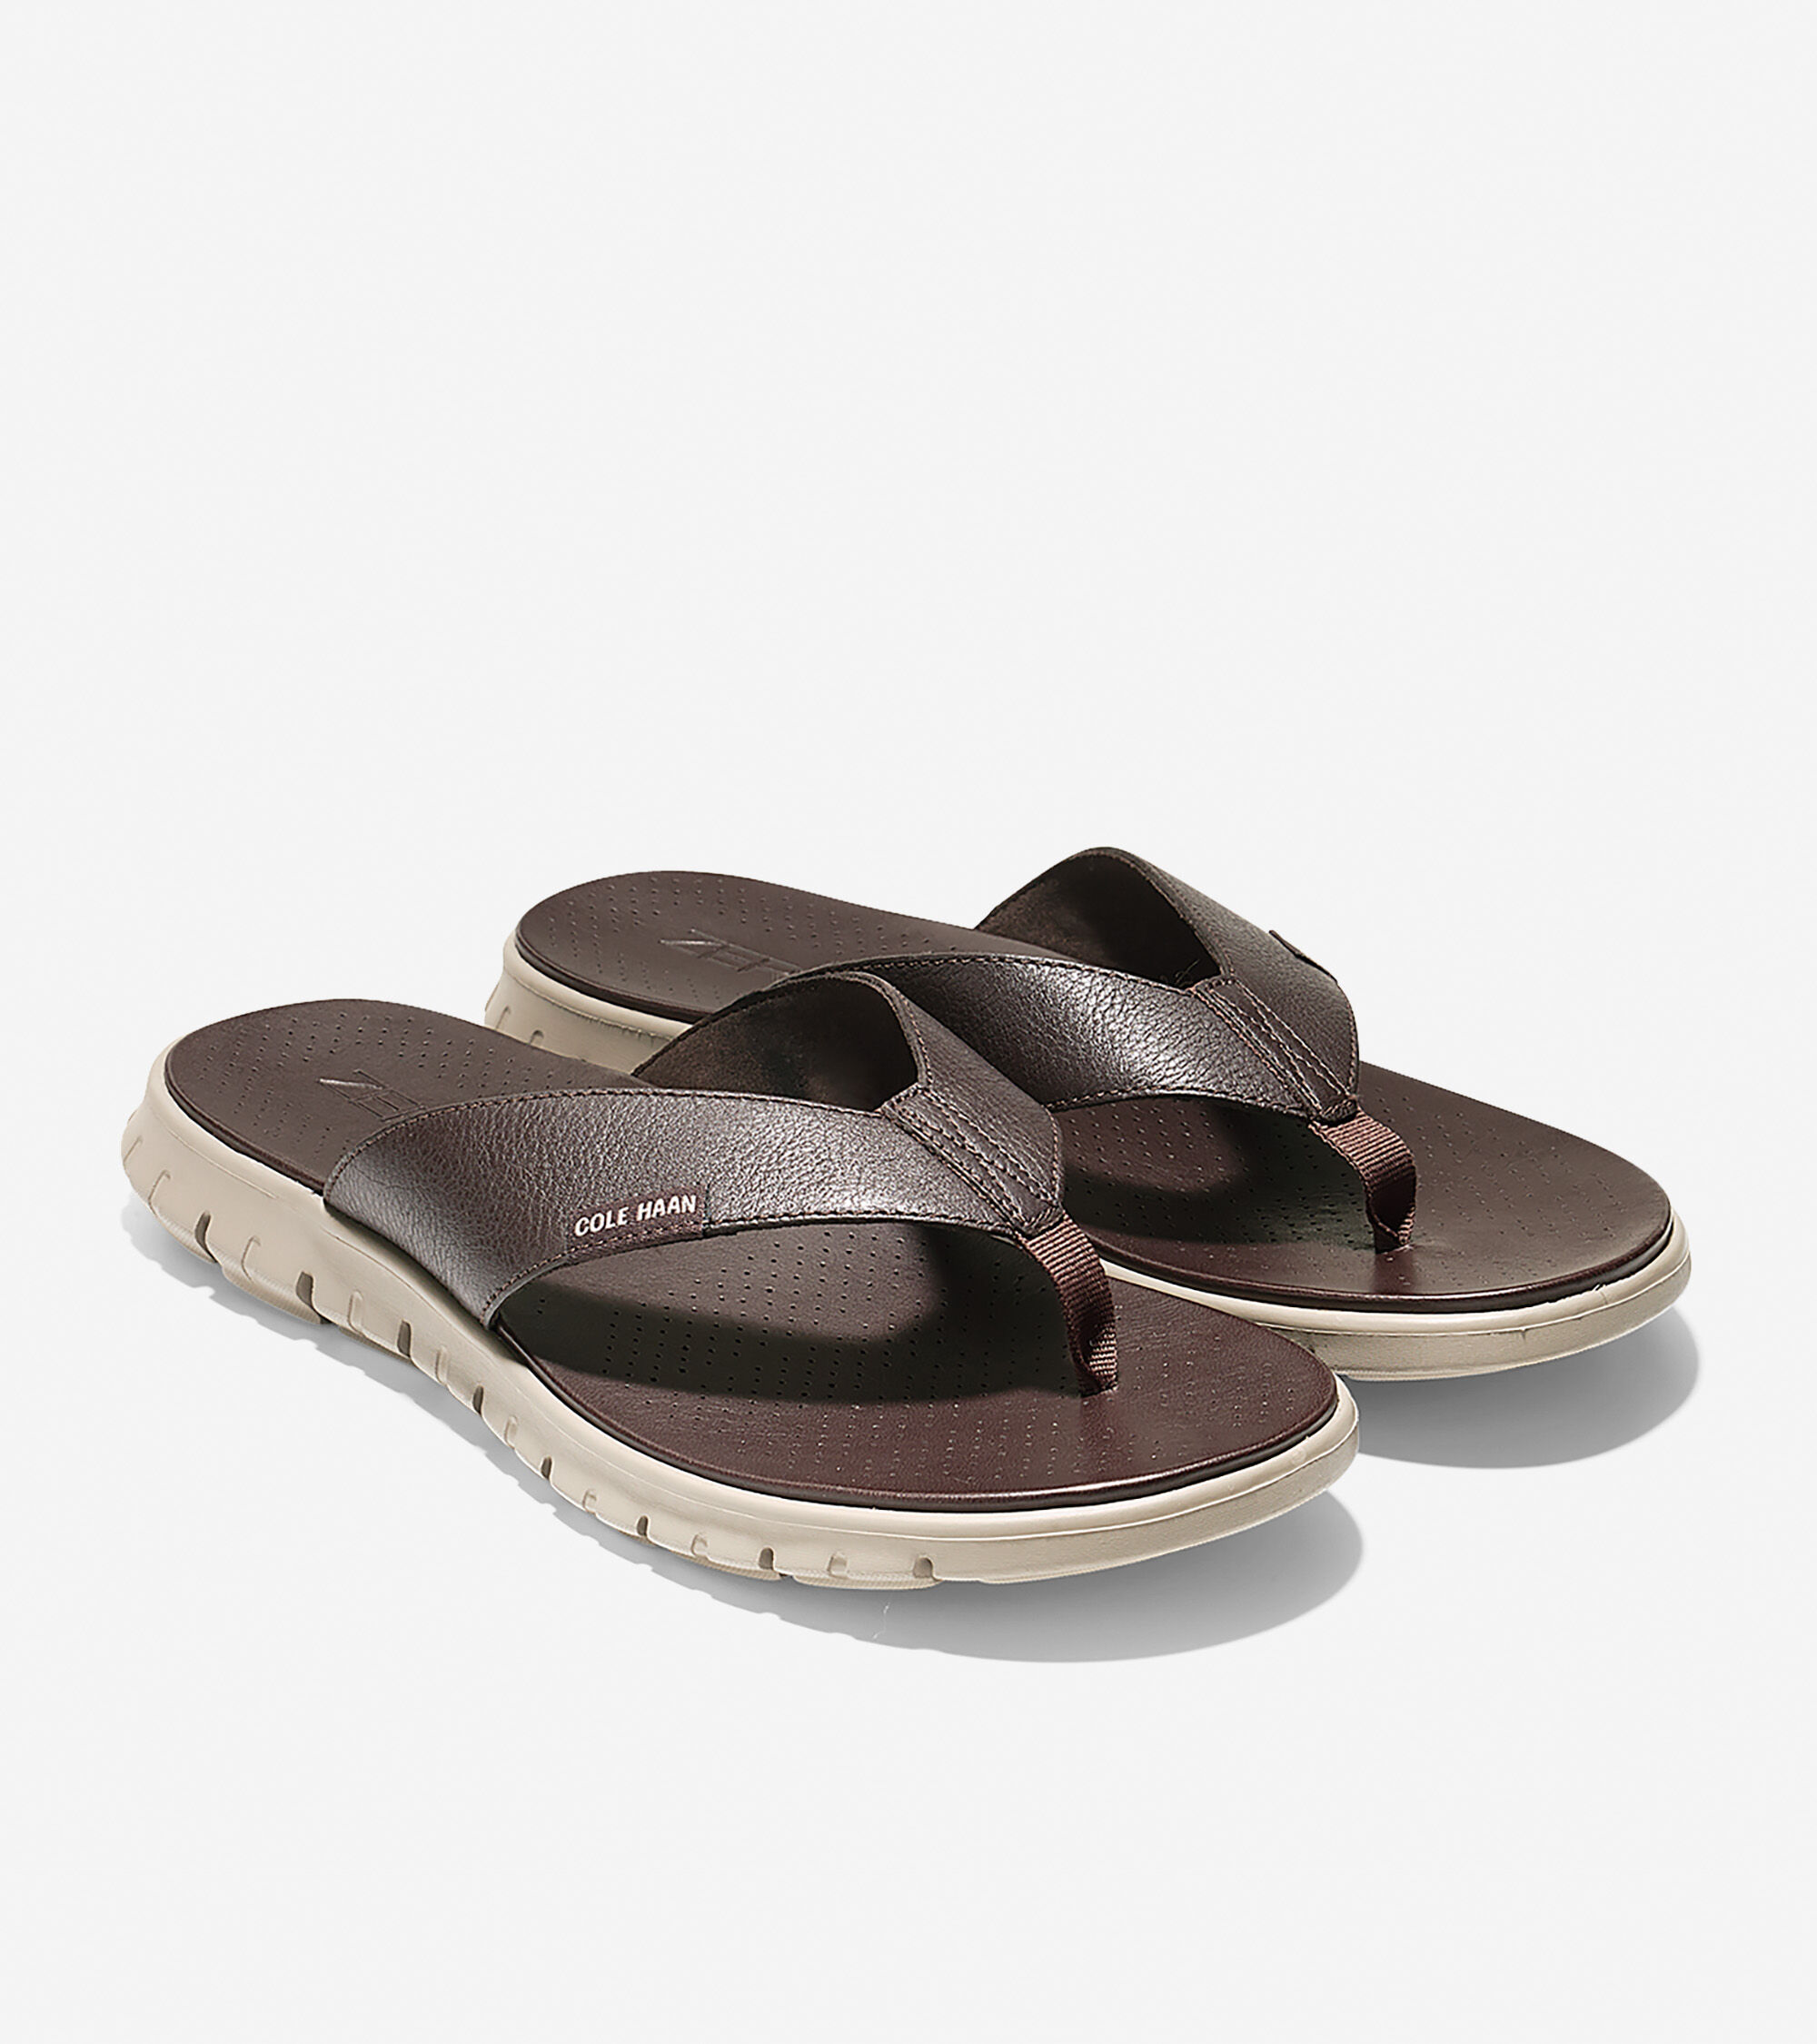 shoes mens outlet clearance cole haan outlet 2017 2018